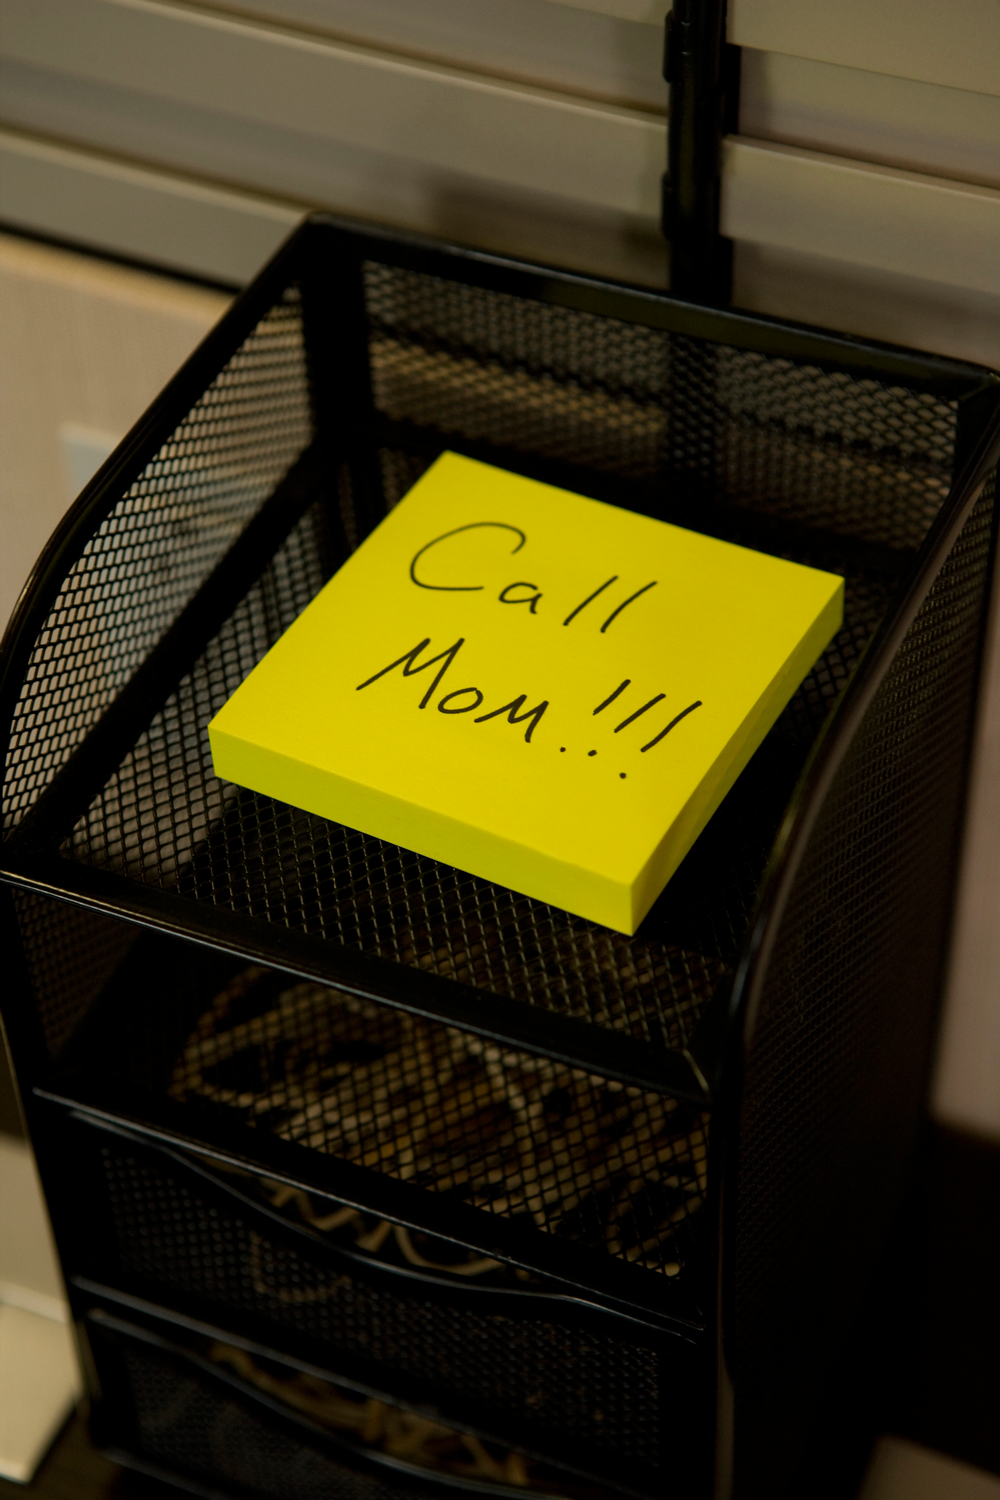 Post-it note reminding person to 'call mom'